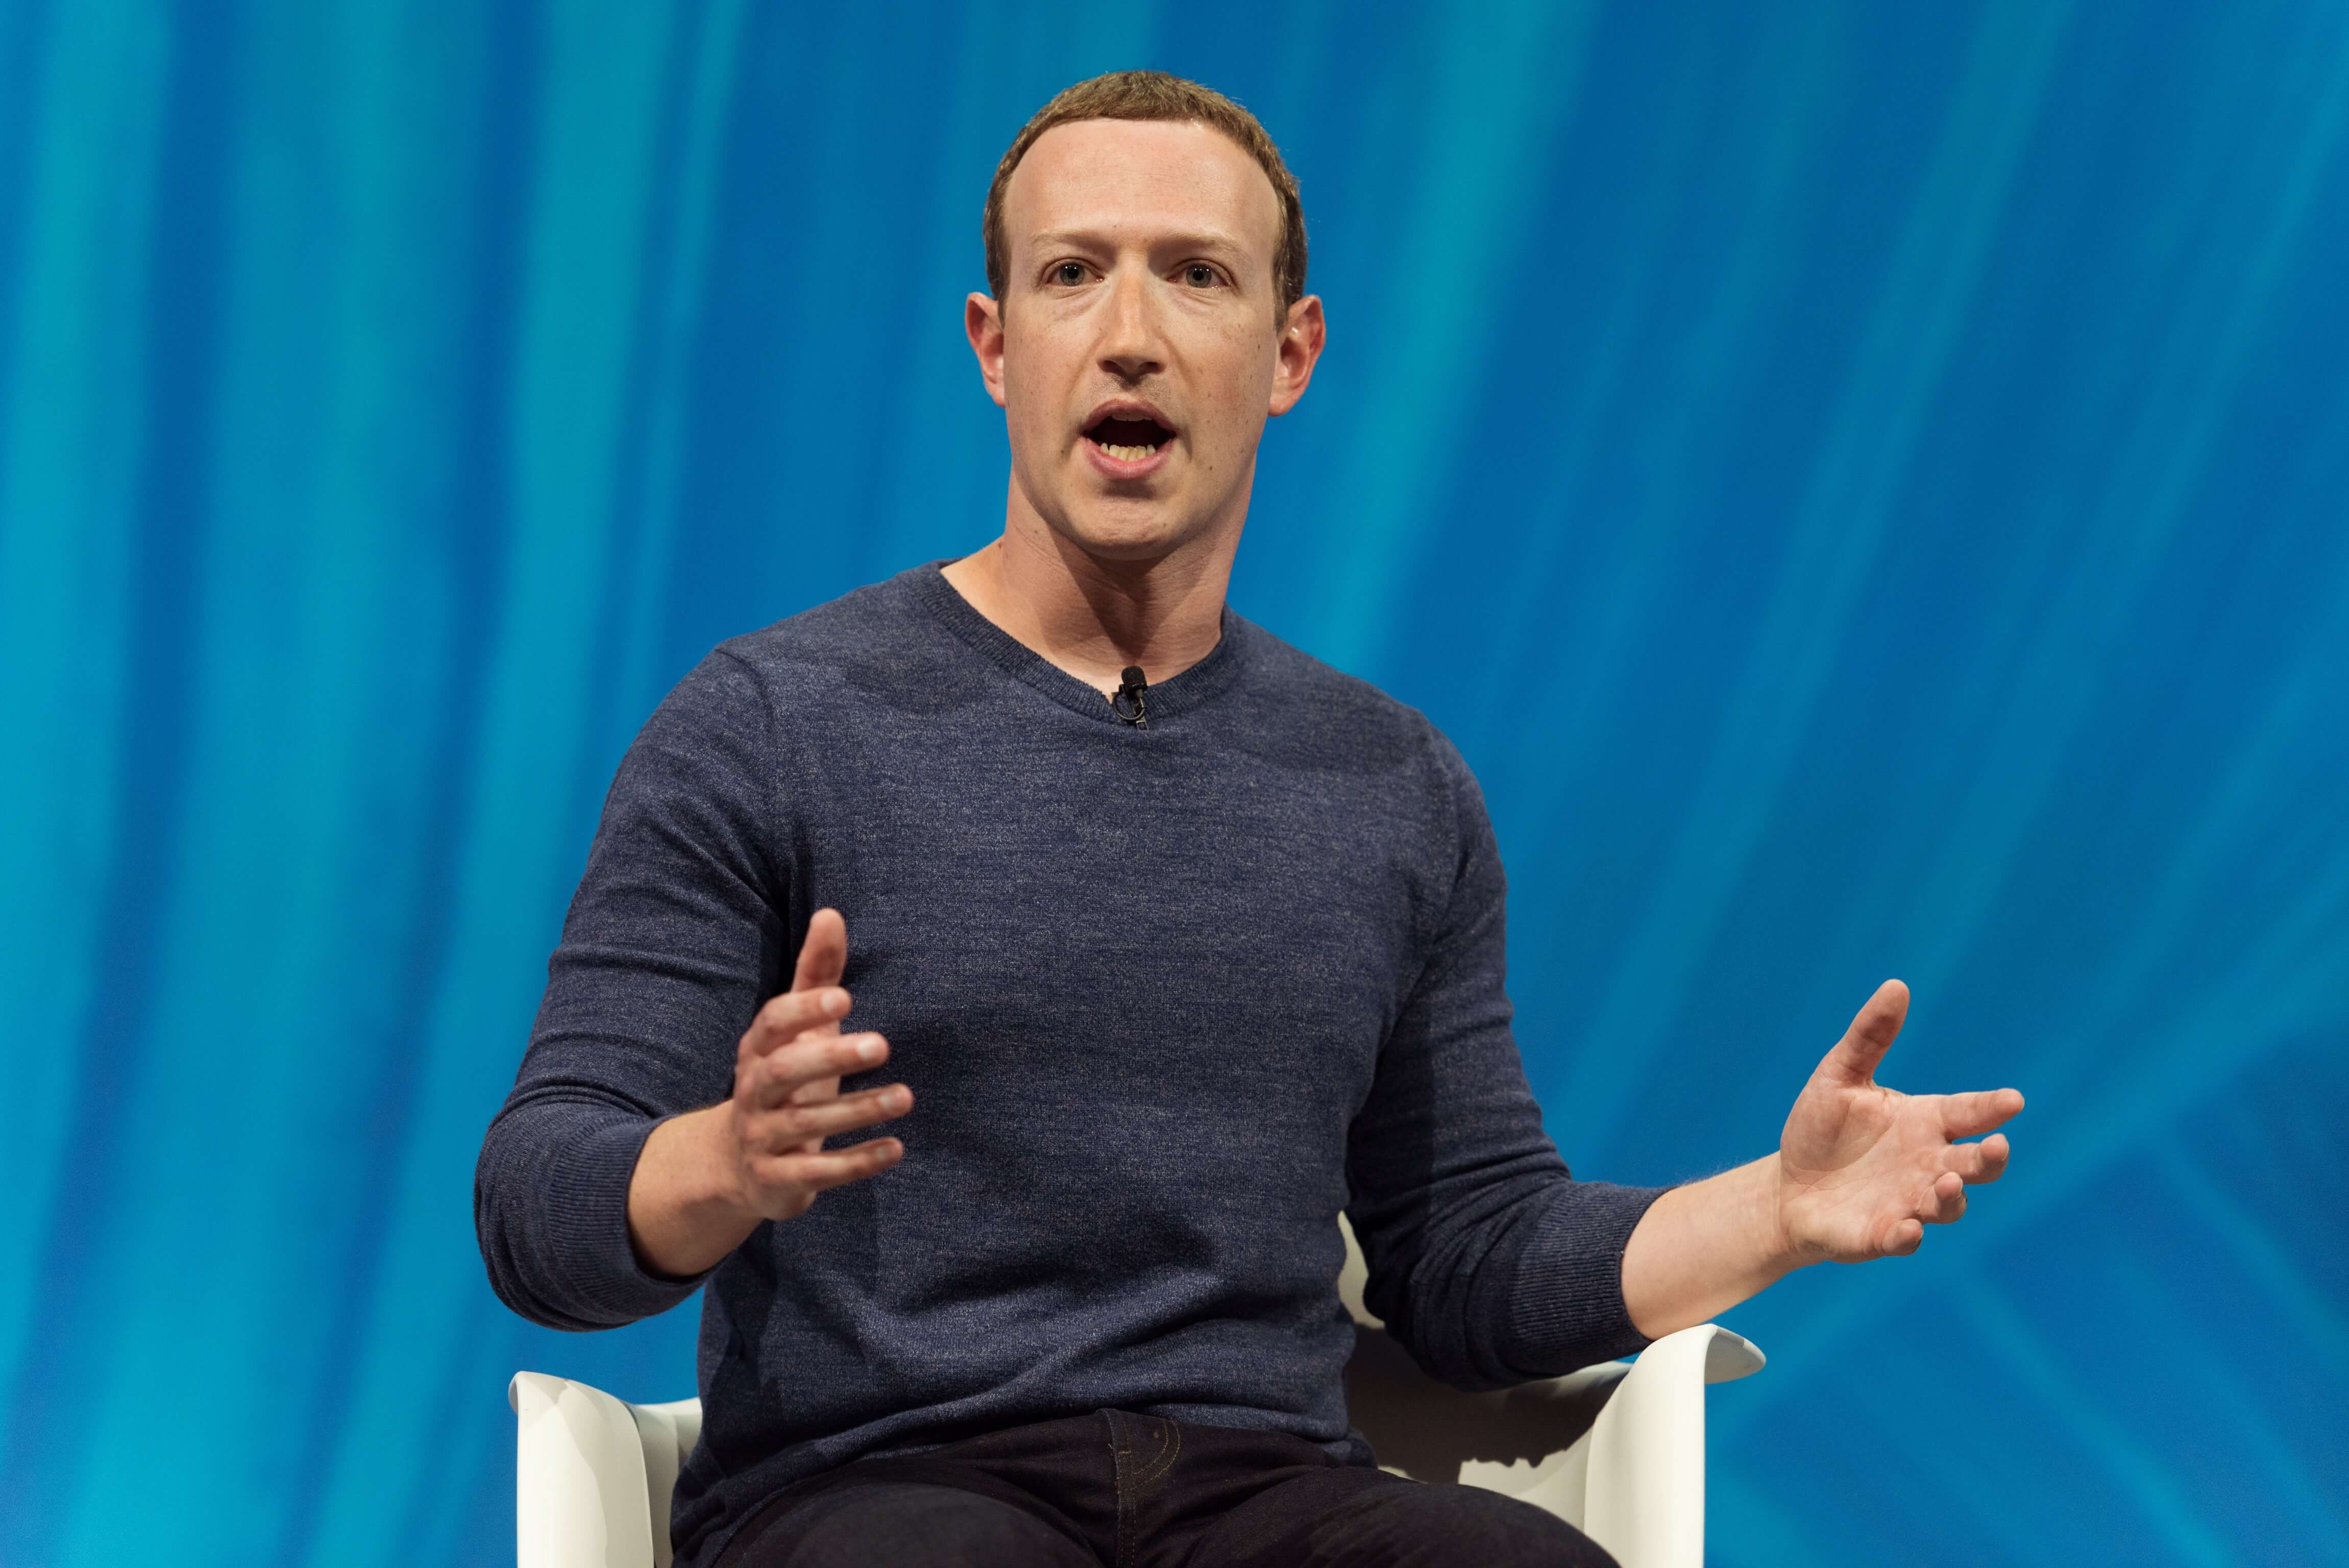 Zuckerberg speaking at a conference